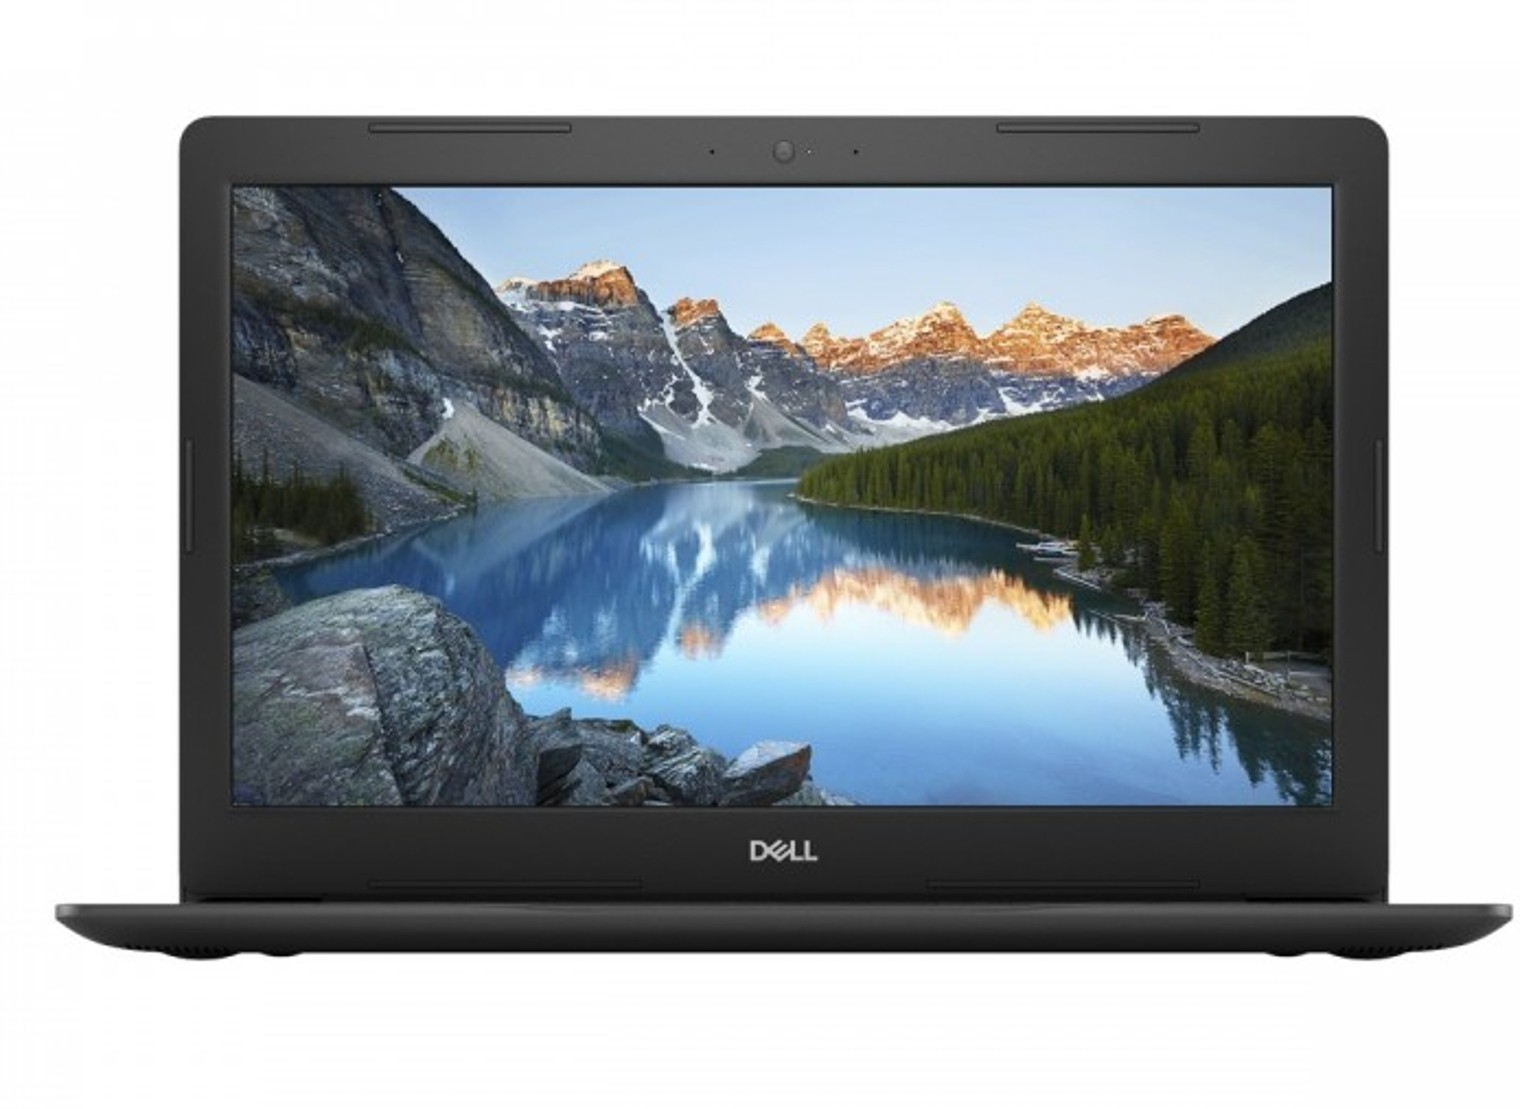 Dell Inspiron 15 5000 Series Core i3 8th Gen 5570 Laptop Image